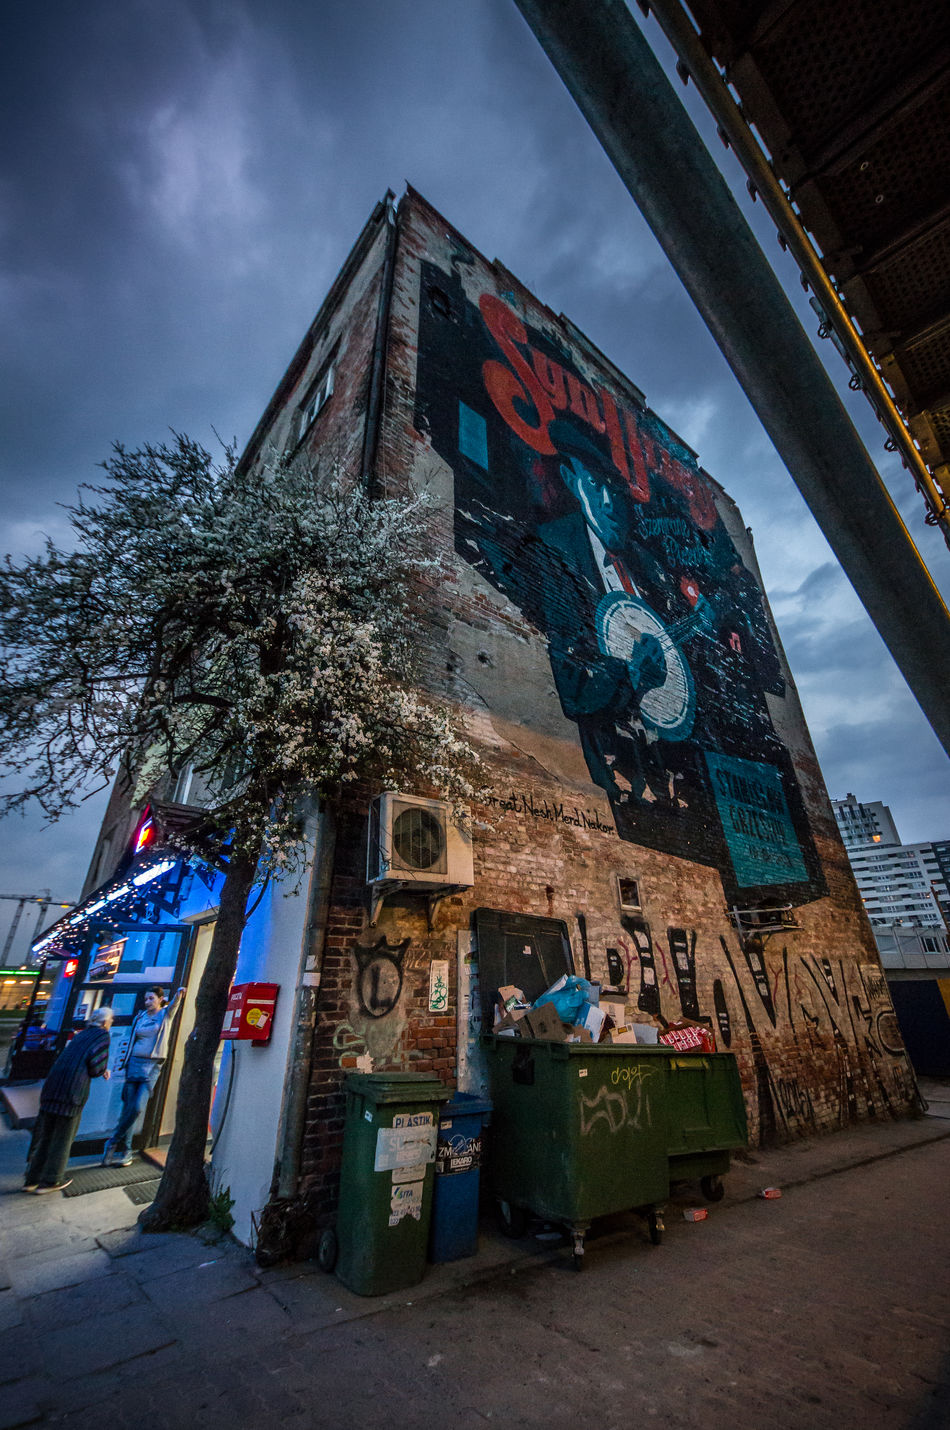 """Day 43! The mural says """"Son of the Street"""" 365 365 Day Challenge 365project Architecture Bin Building Exterior Built Structure City Day Garbage Mural Mural Art Neon Neon Lights No People Outdoors Poland Sky Stree Art Street Streetphotography Warsaw"""